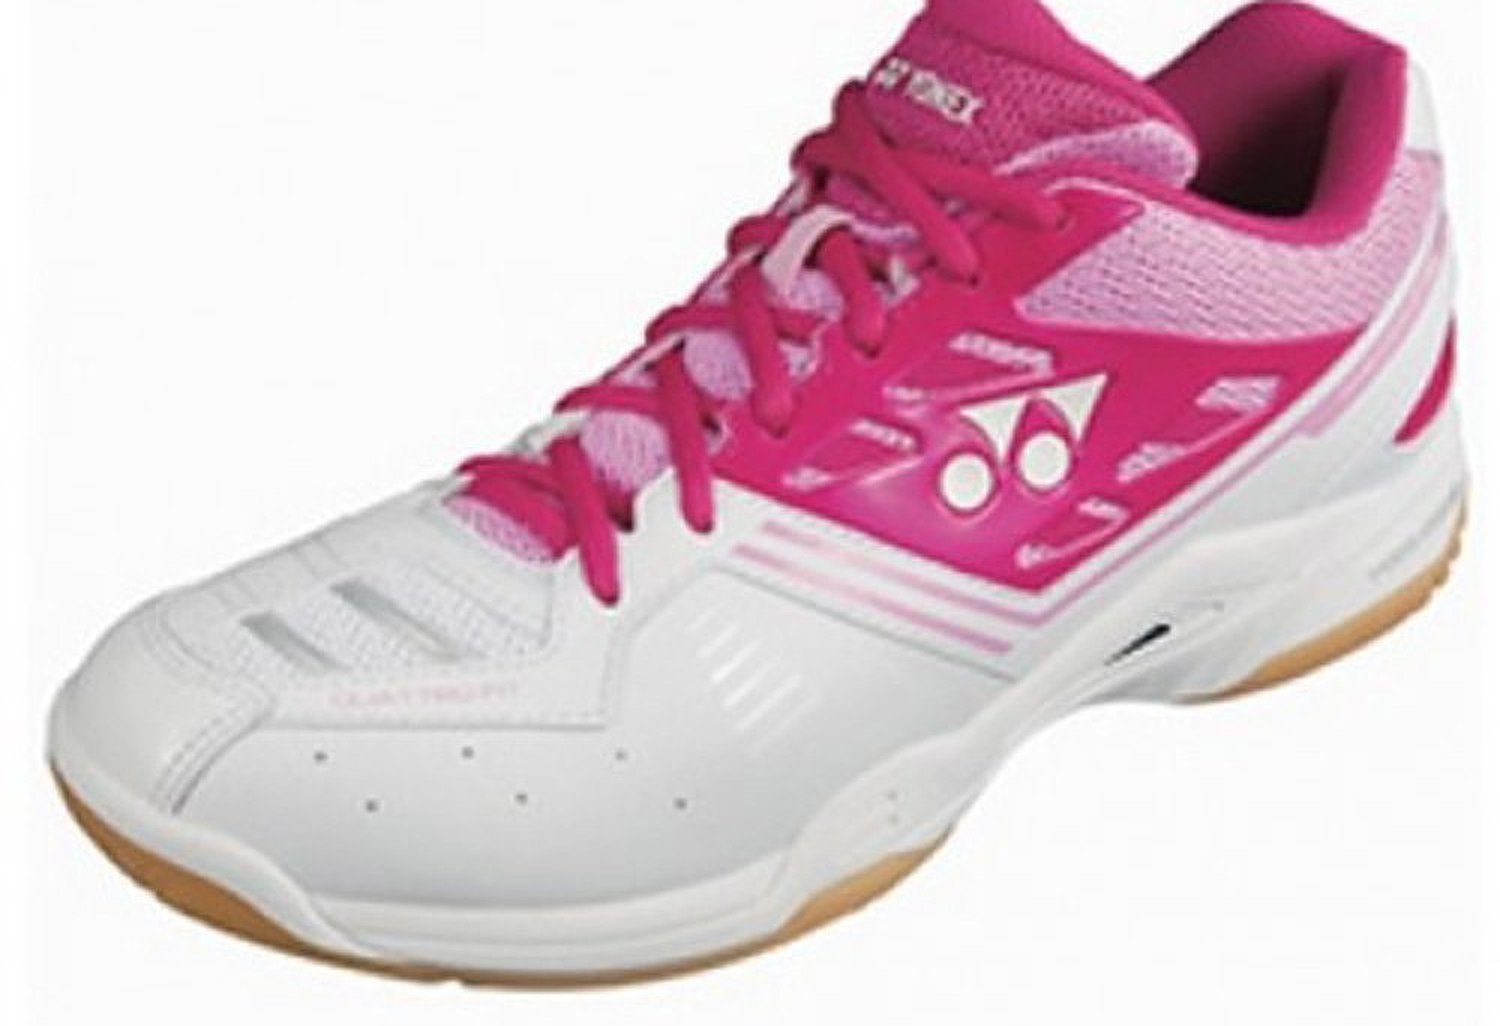 YONEX PC F1 NEO LX-Women's Badminton Shoe-bright pink